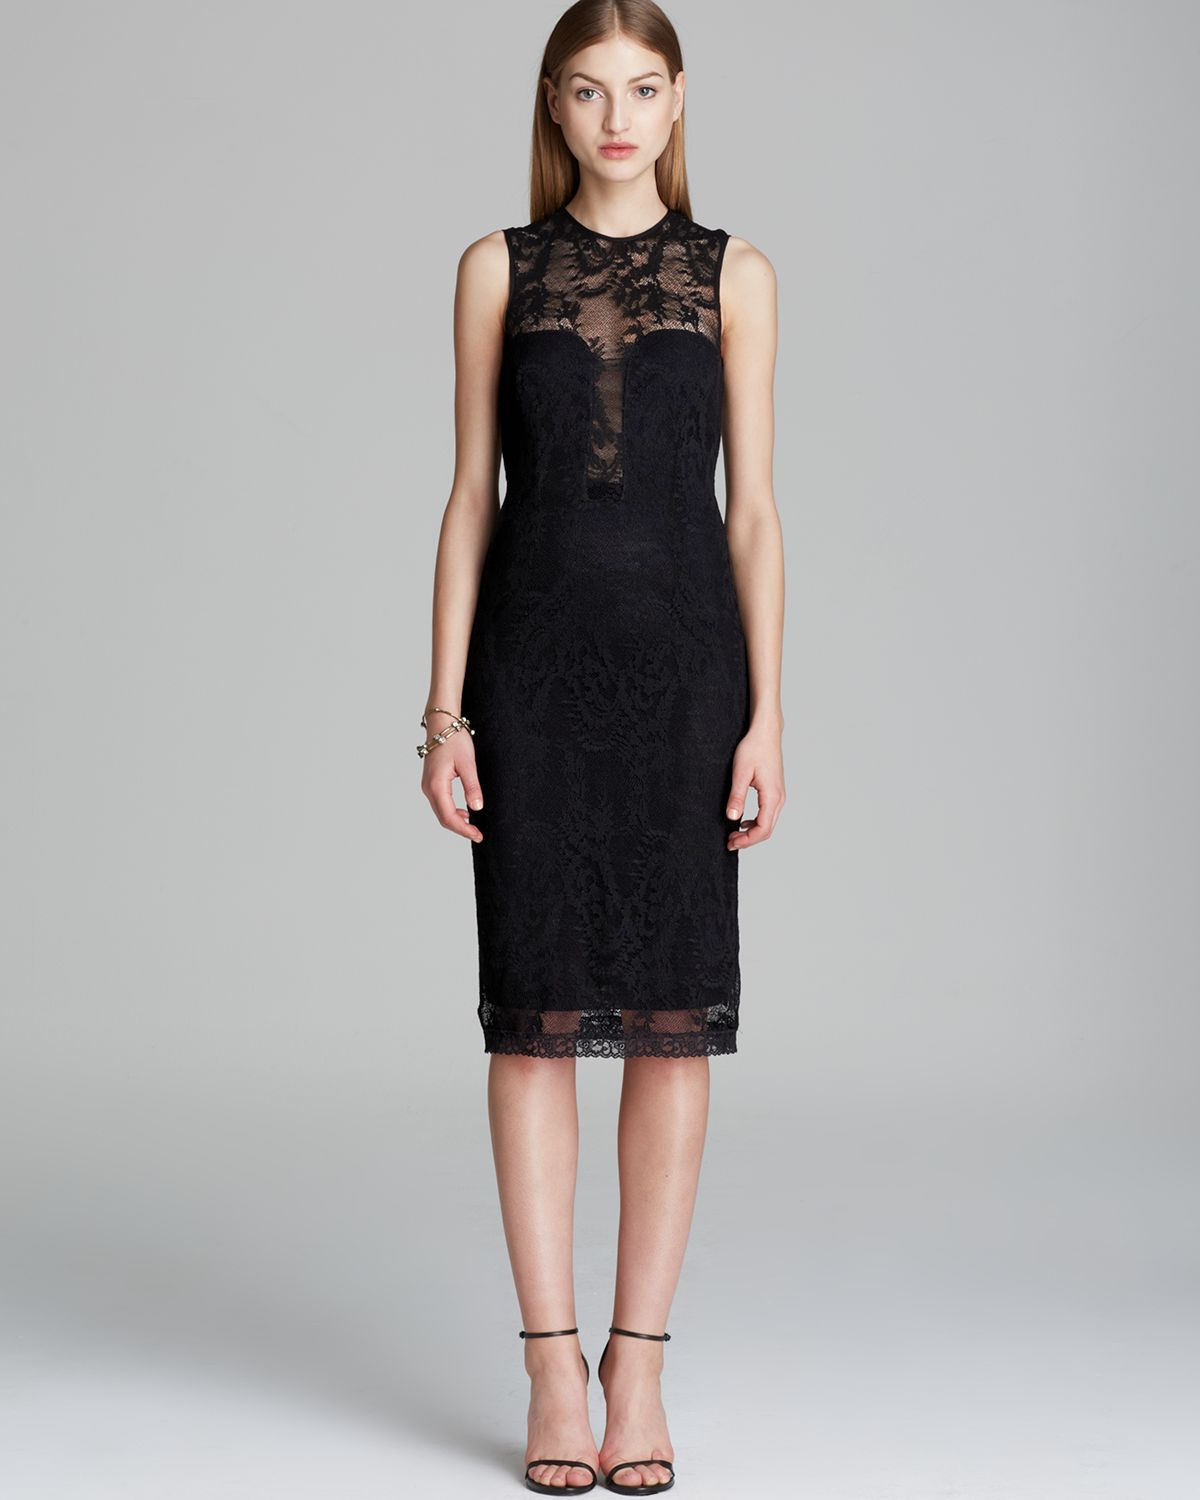 Nicole miller Dress Illusion Stretch Floral Lace in Black - Lyst